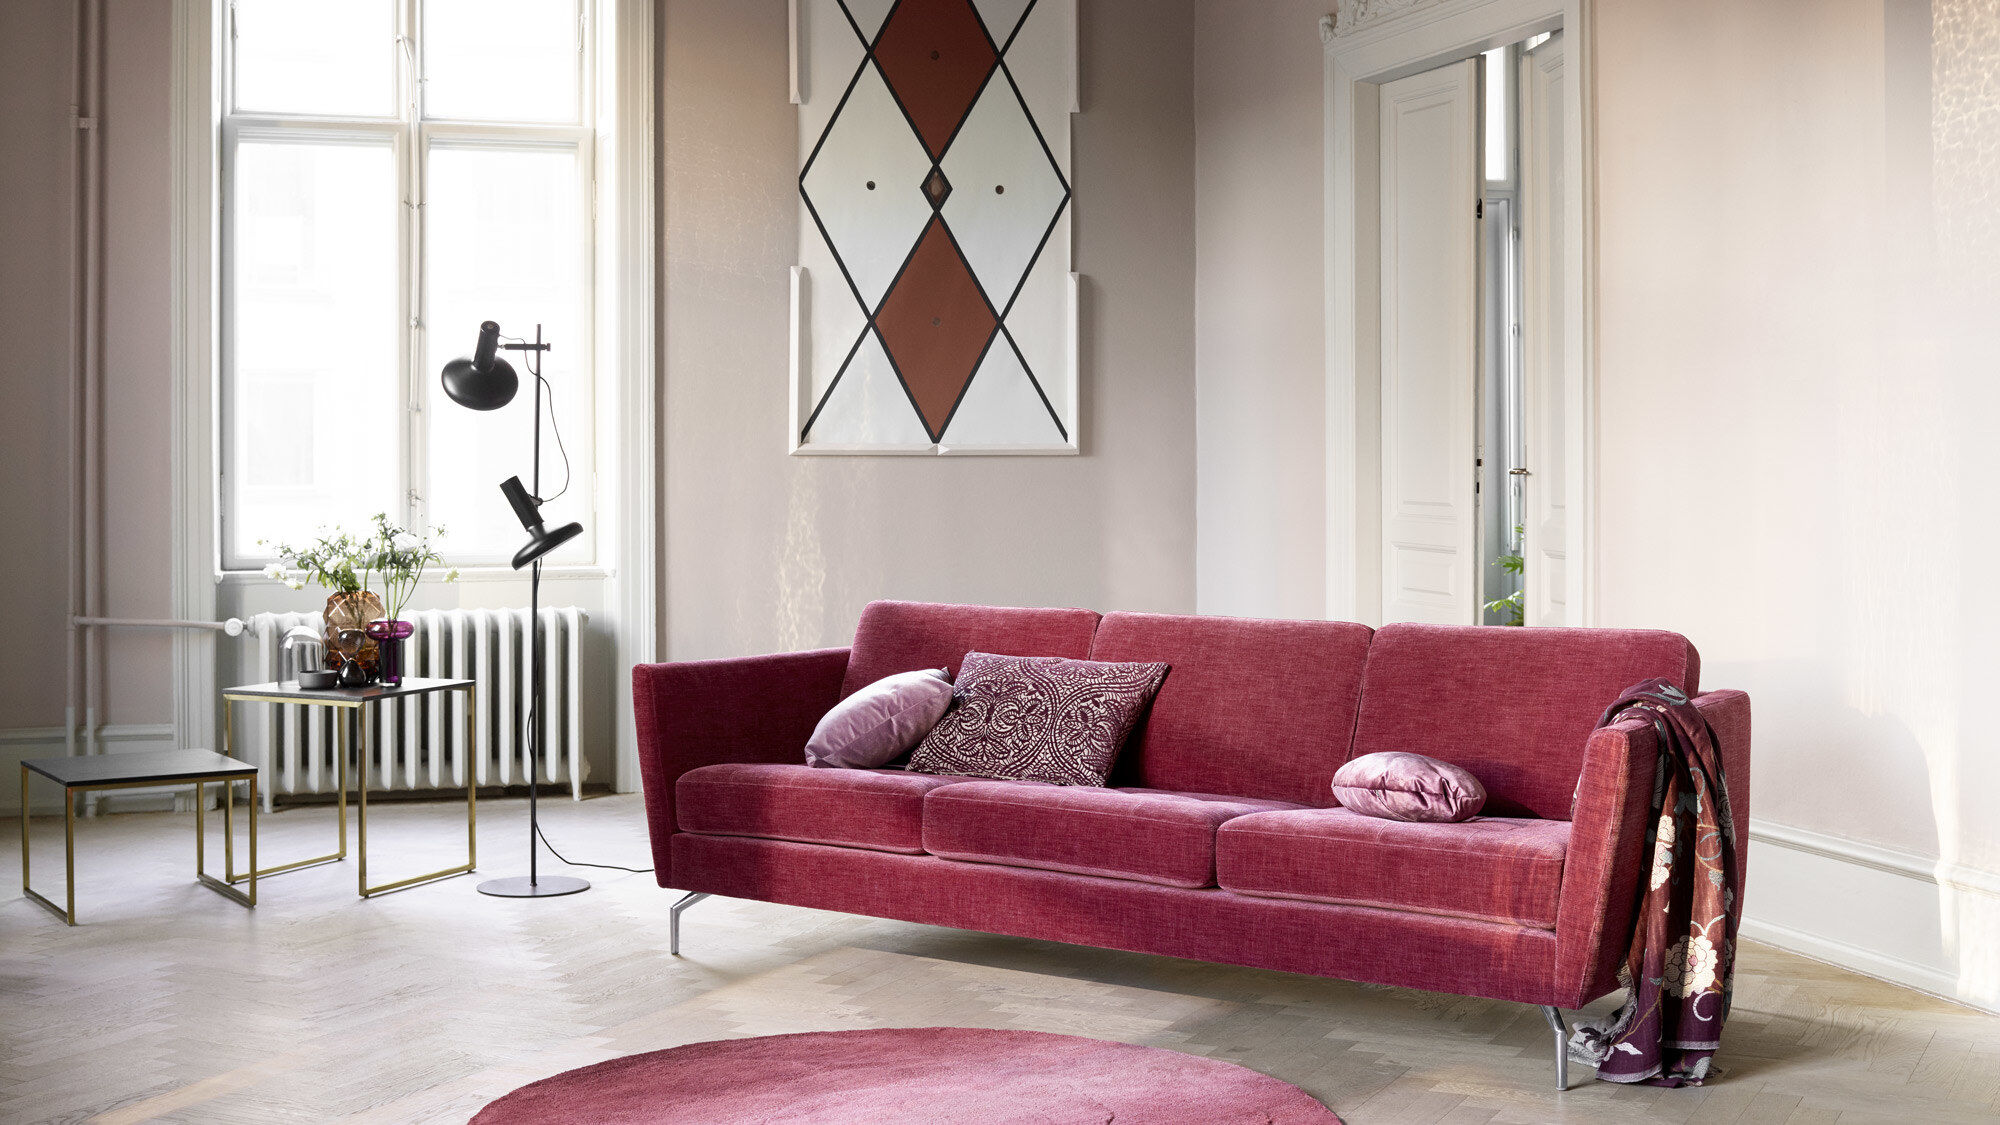 3 seater sofas - Osaka sofa, tufted seat